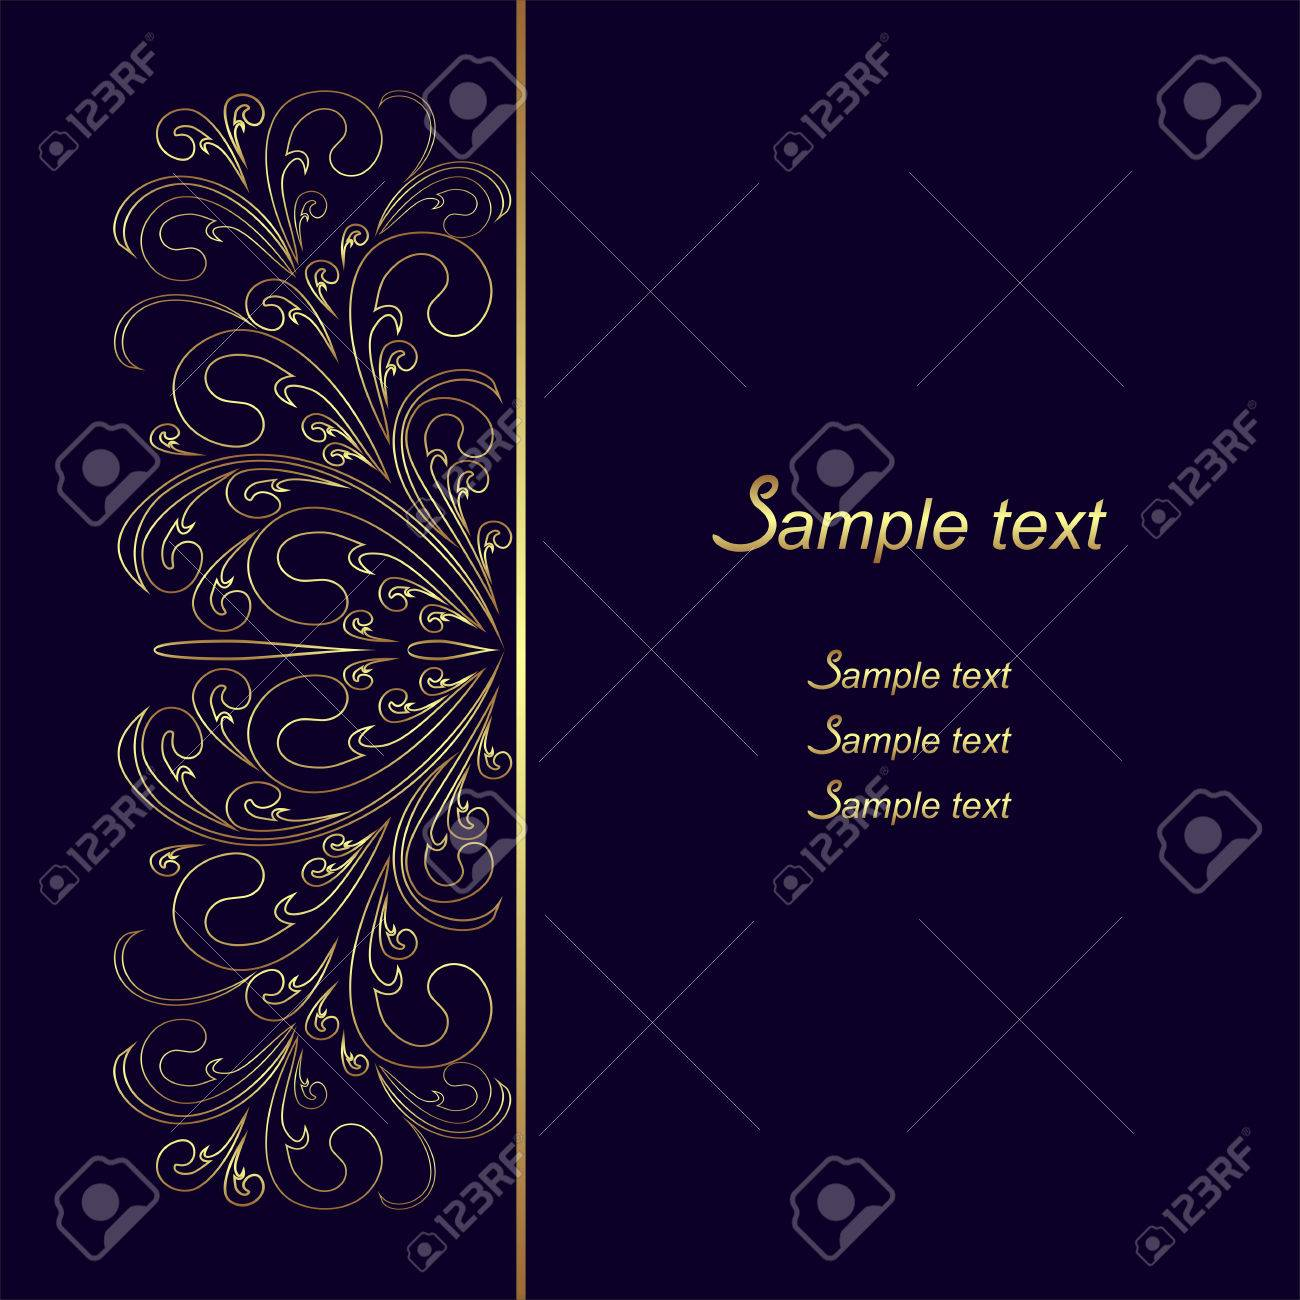 Dark blue Background with golden lacy Border - 25288541